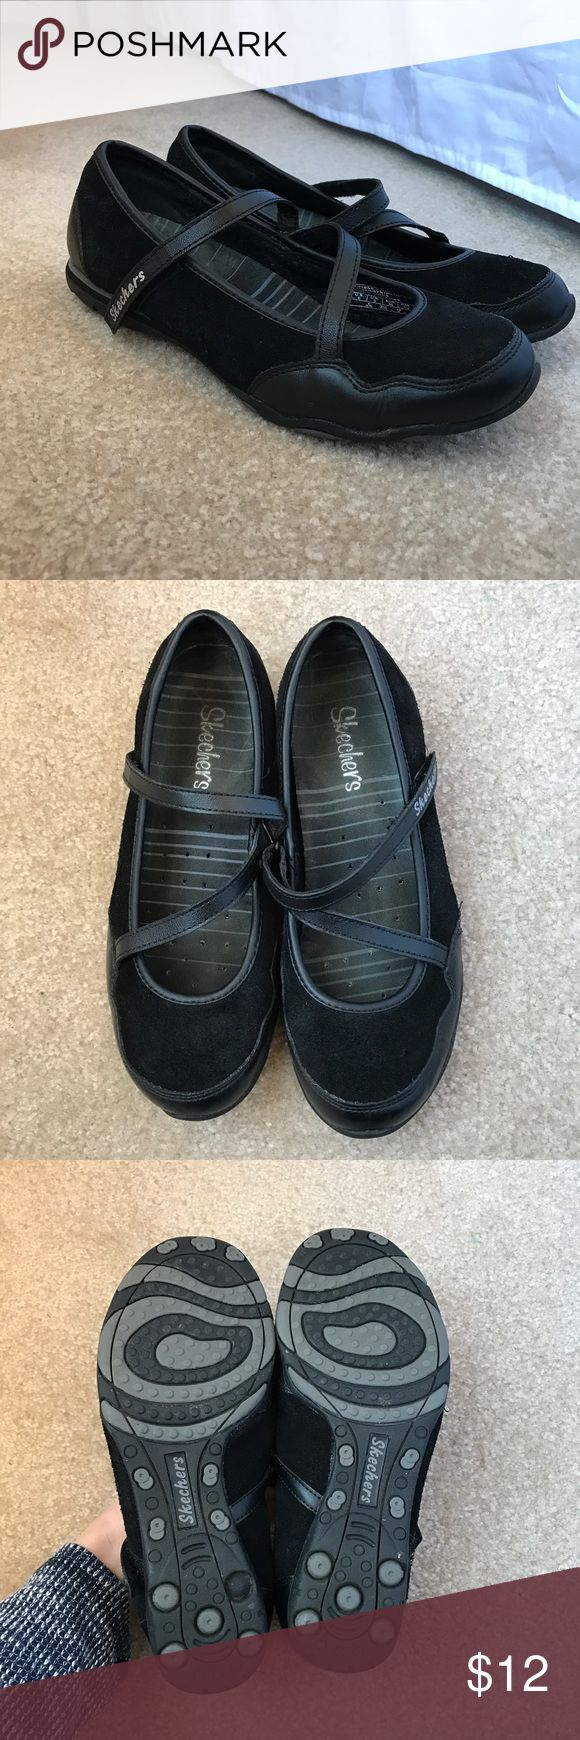 Skechers Mary Jane Flats In great condition Skechers Mary Jane style flats. Criss cross straps and great support. Only worn a few times inside working at a spa. Size 6. Skechers Shoes Flats & Loafers